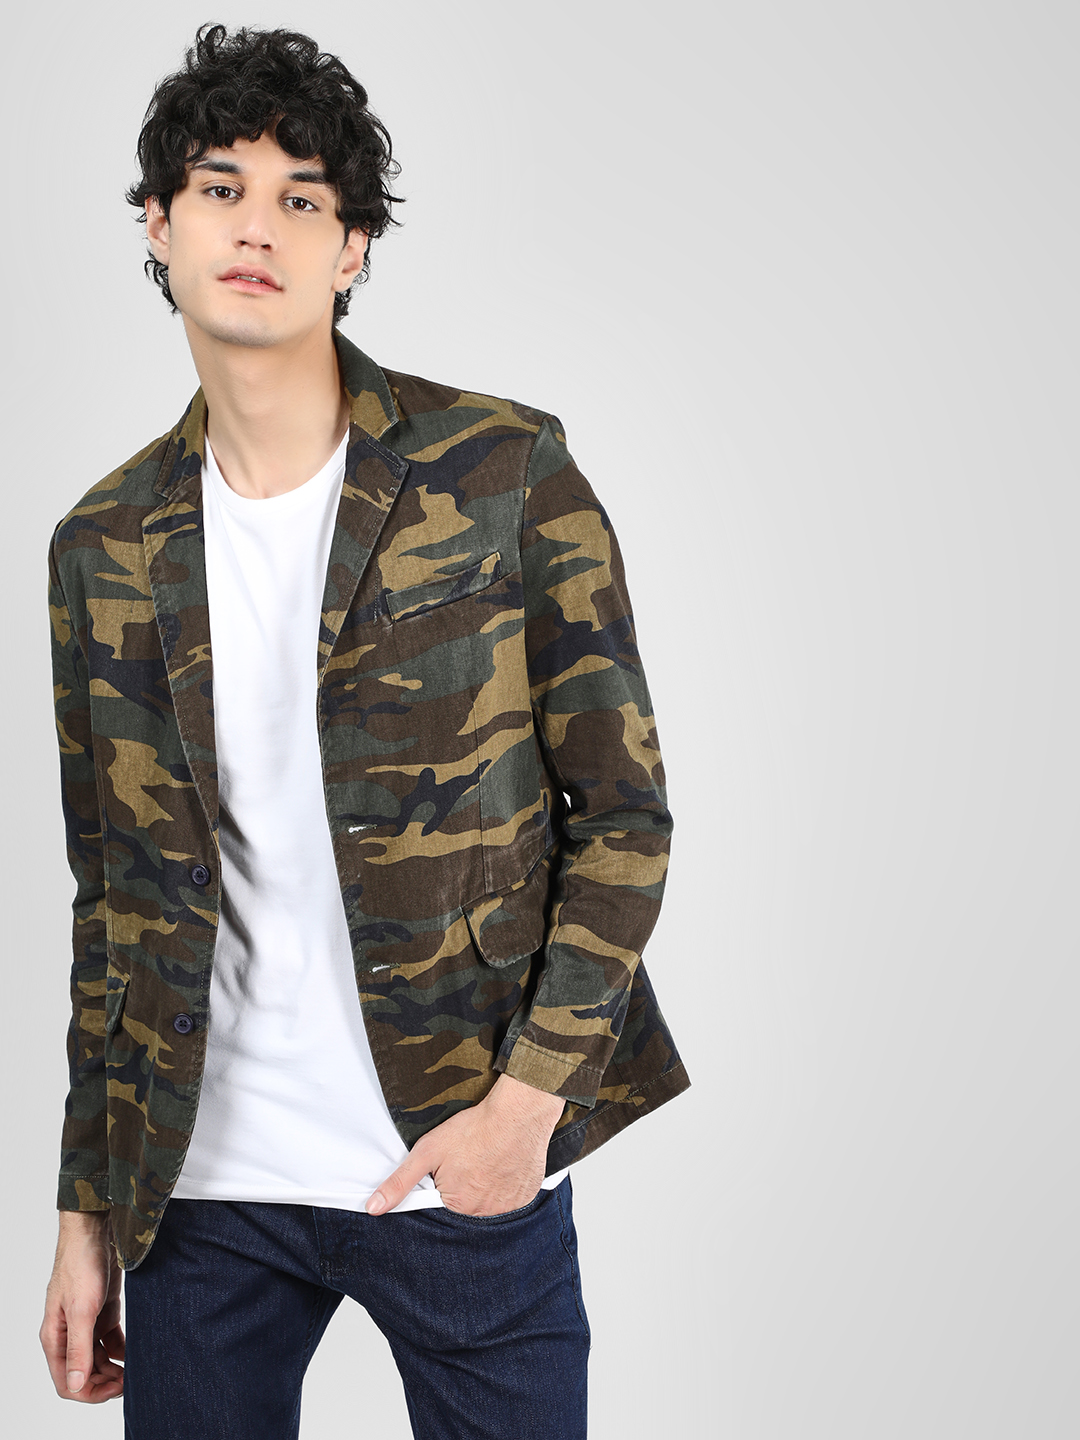 Blue Saint Green Camo Printed Slim Blazer 1